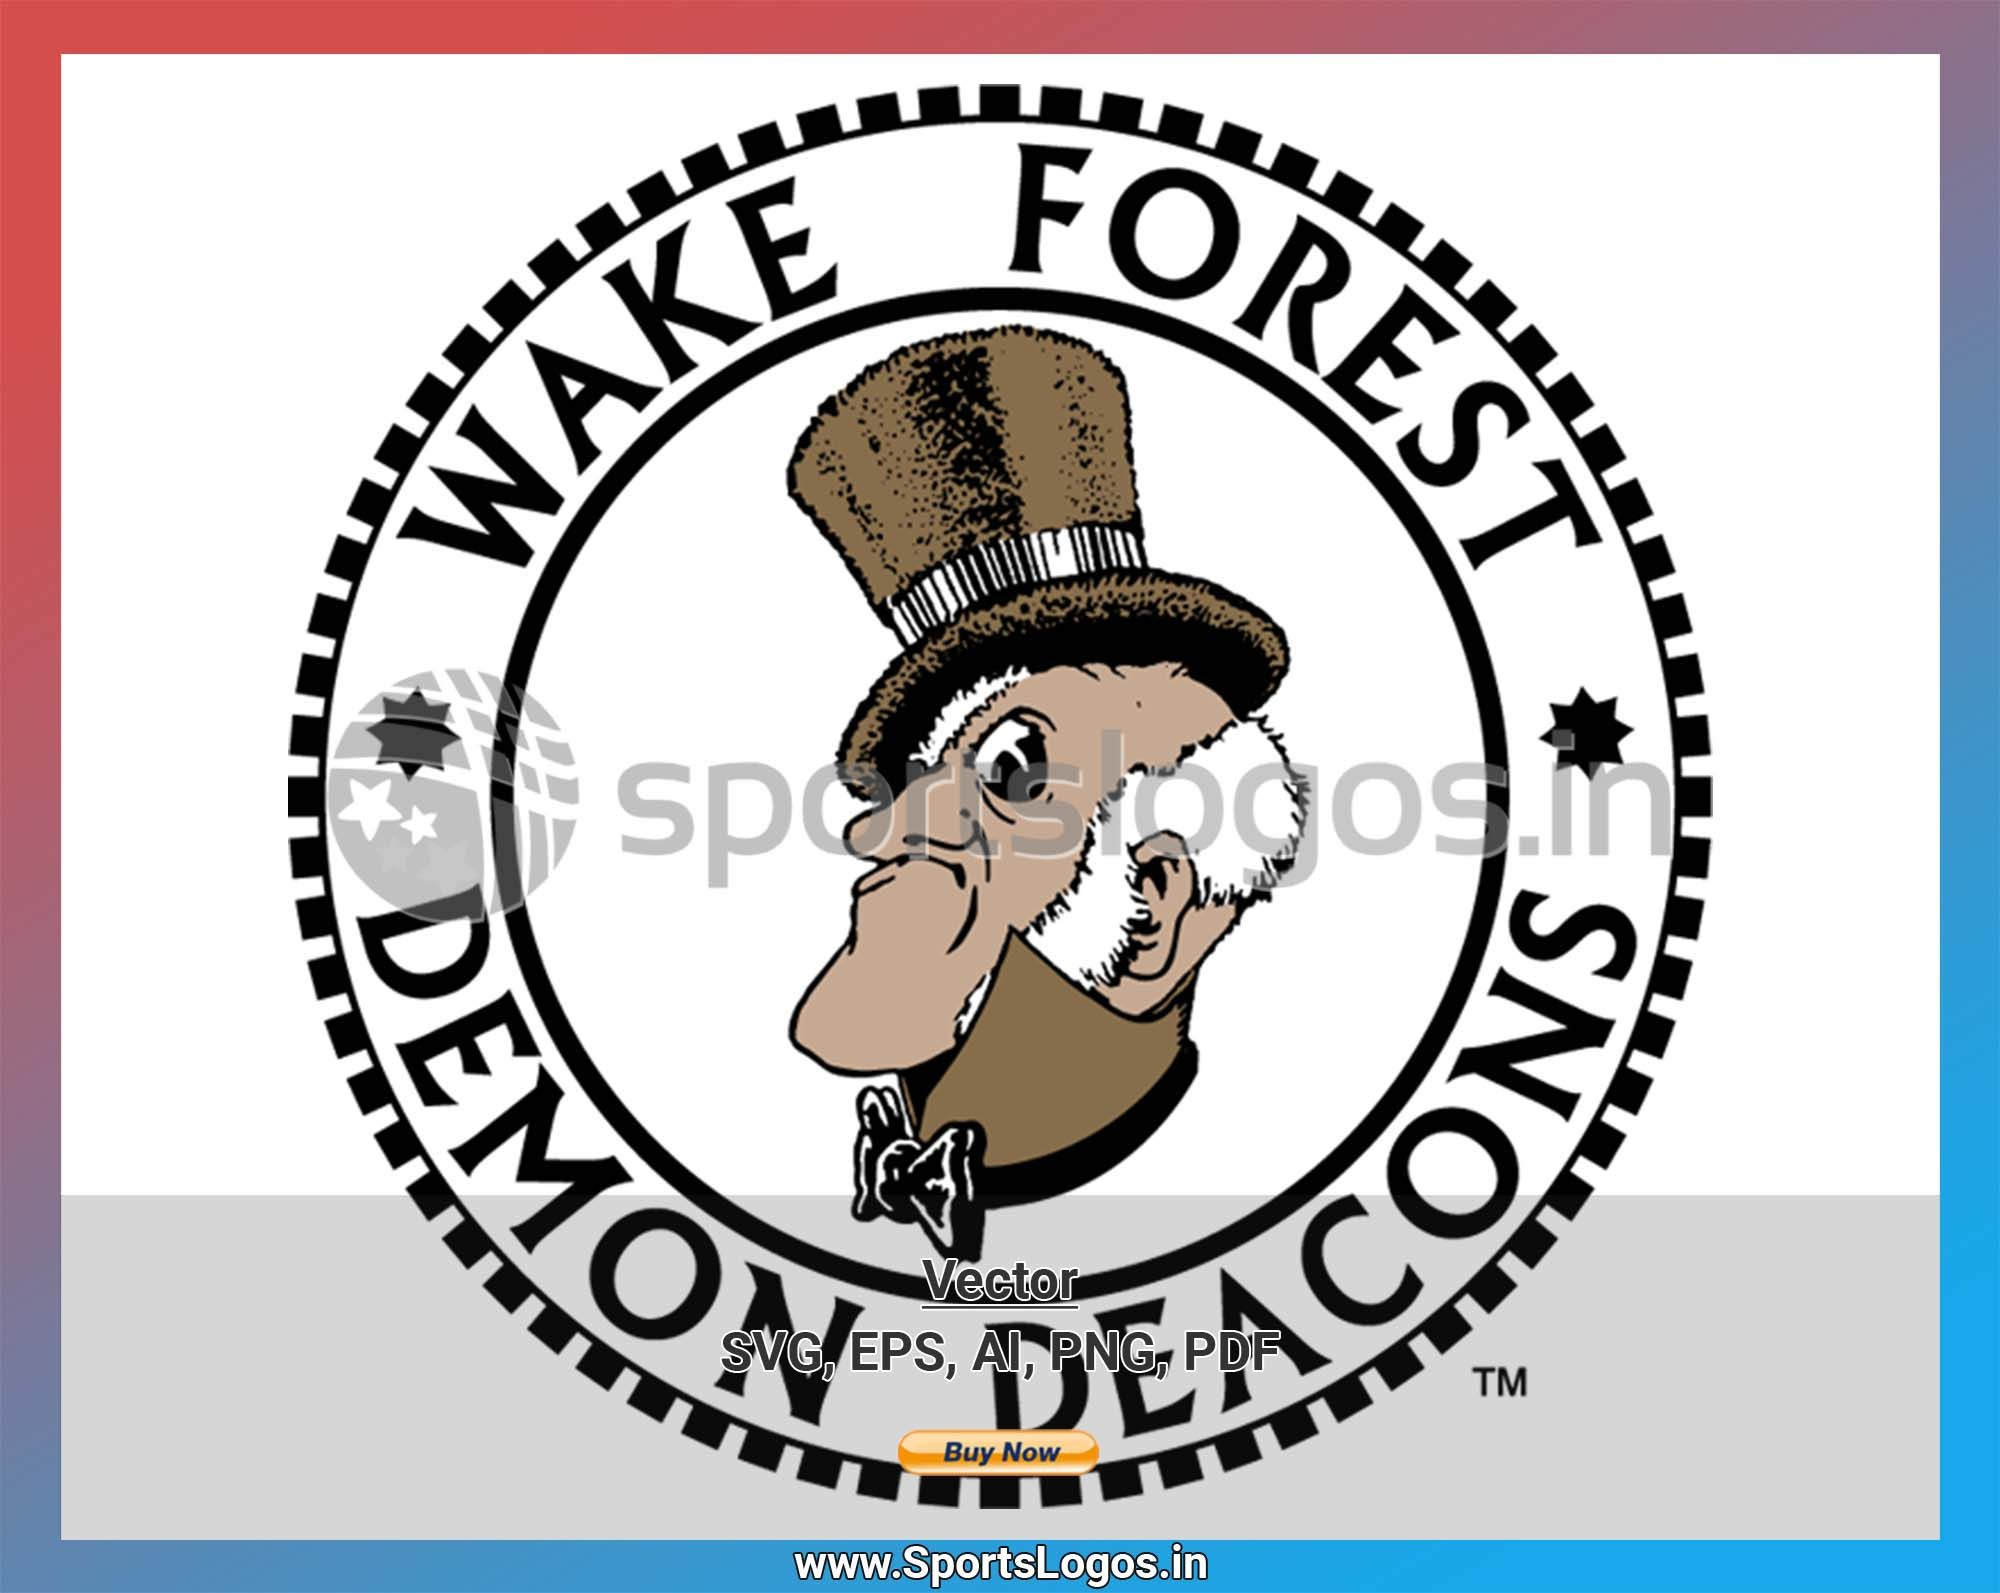 Wake Forest Demon Deacons 19681992, NCAA Division I (u